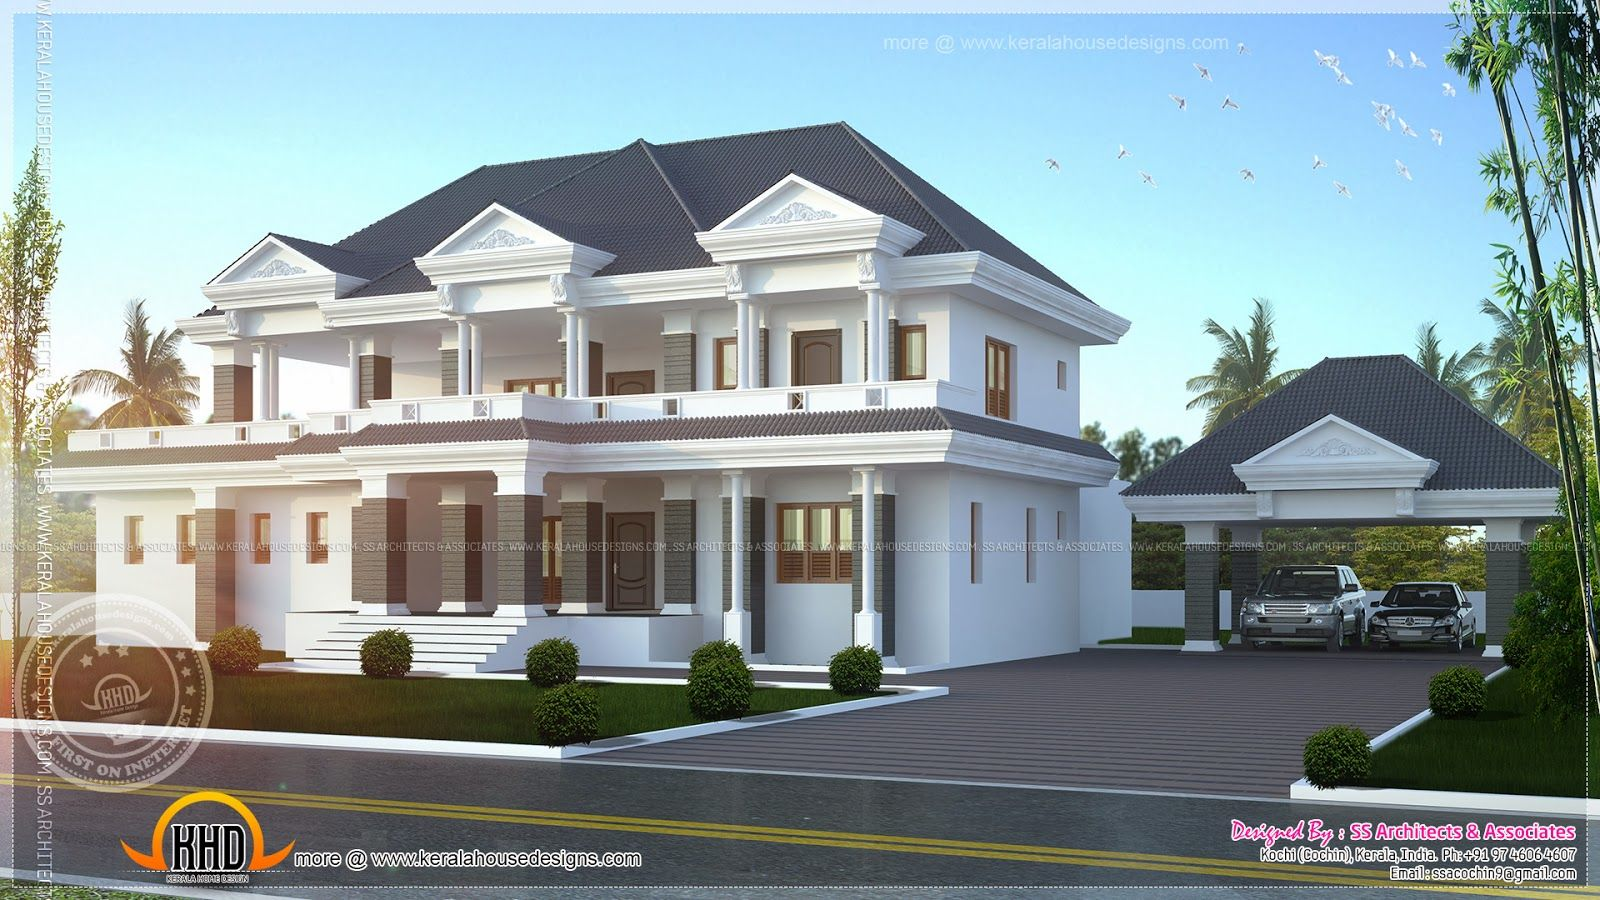 New House Design Of Modern Nalukettu House Plans Joy Studio Design Gallery